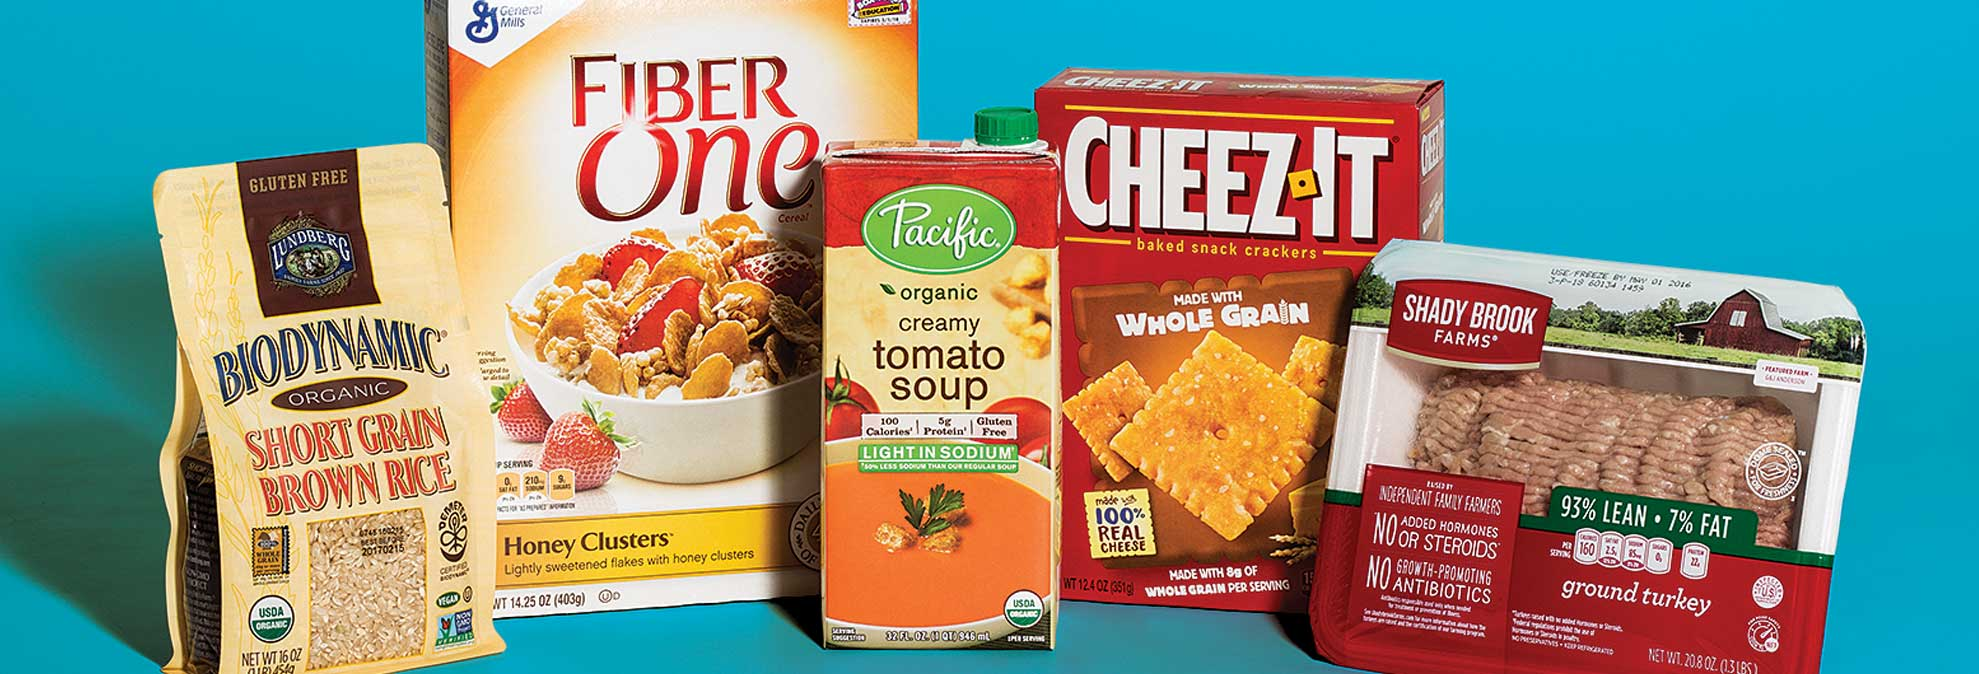 can you believe the health claim on that food label? - consumer reports